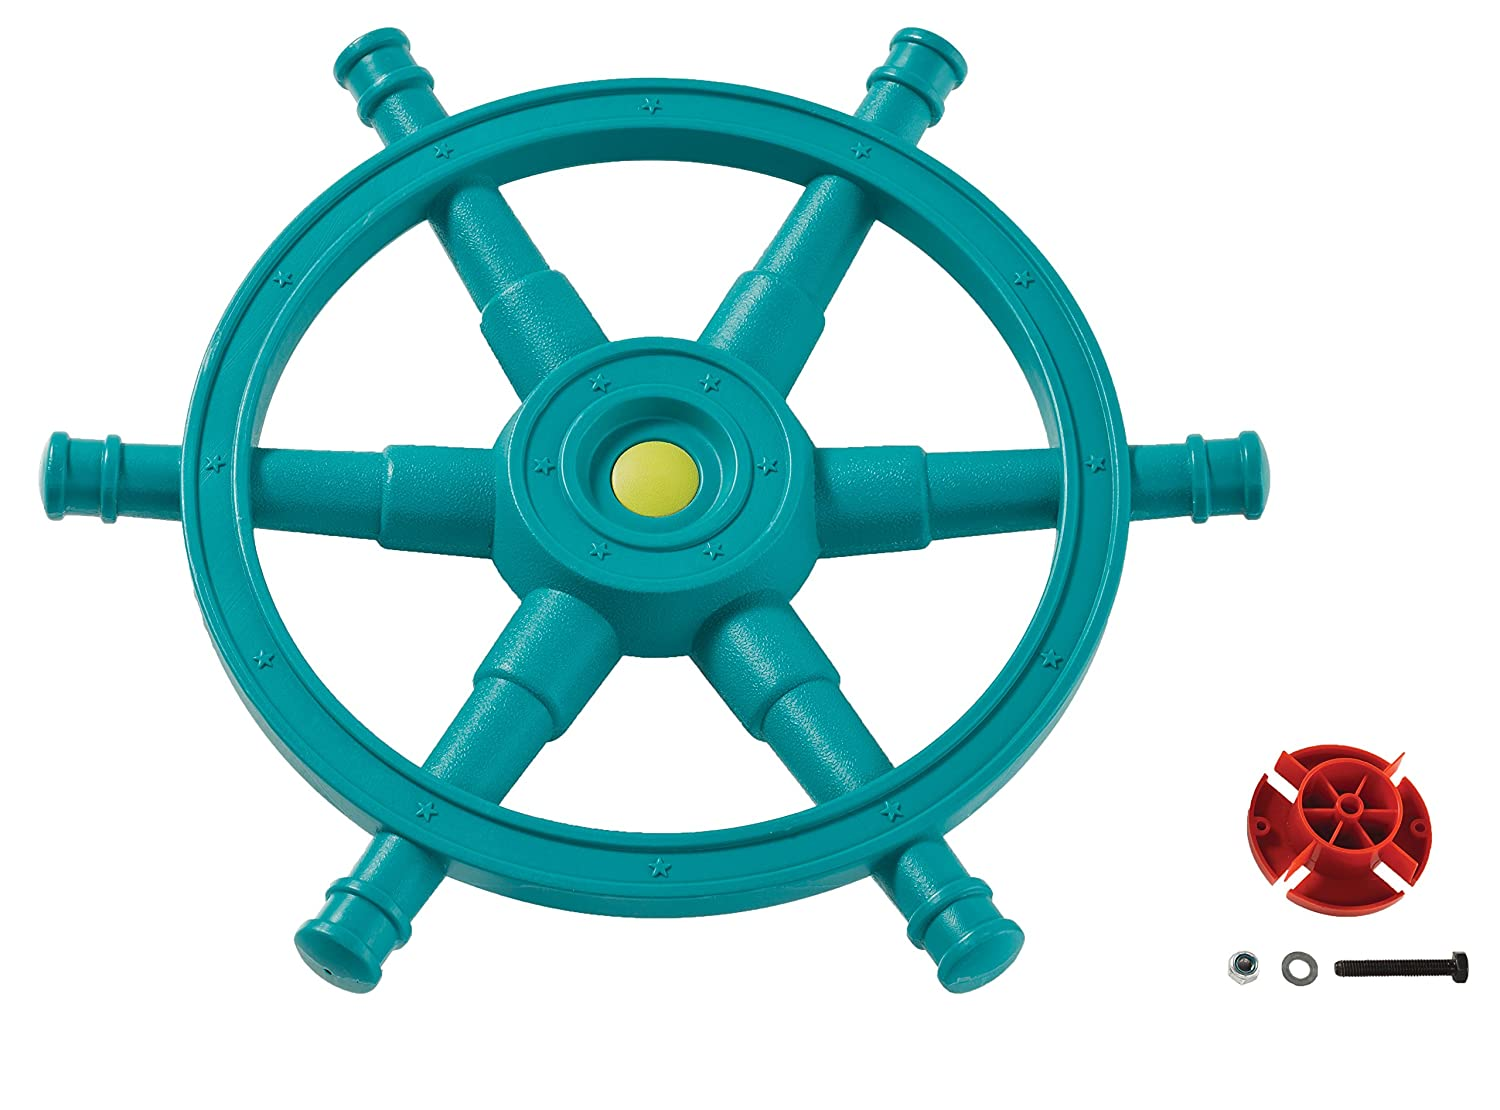 Pirate Boat Steering Wheel Jumbo Sized Turquoise Blue For Kids Play Tower or Tree House. Little Duck Bear Ltd